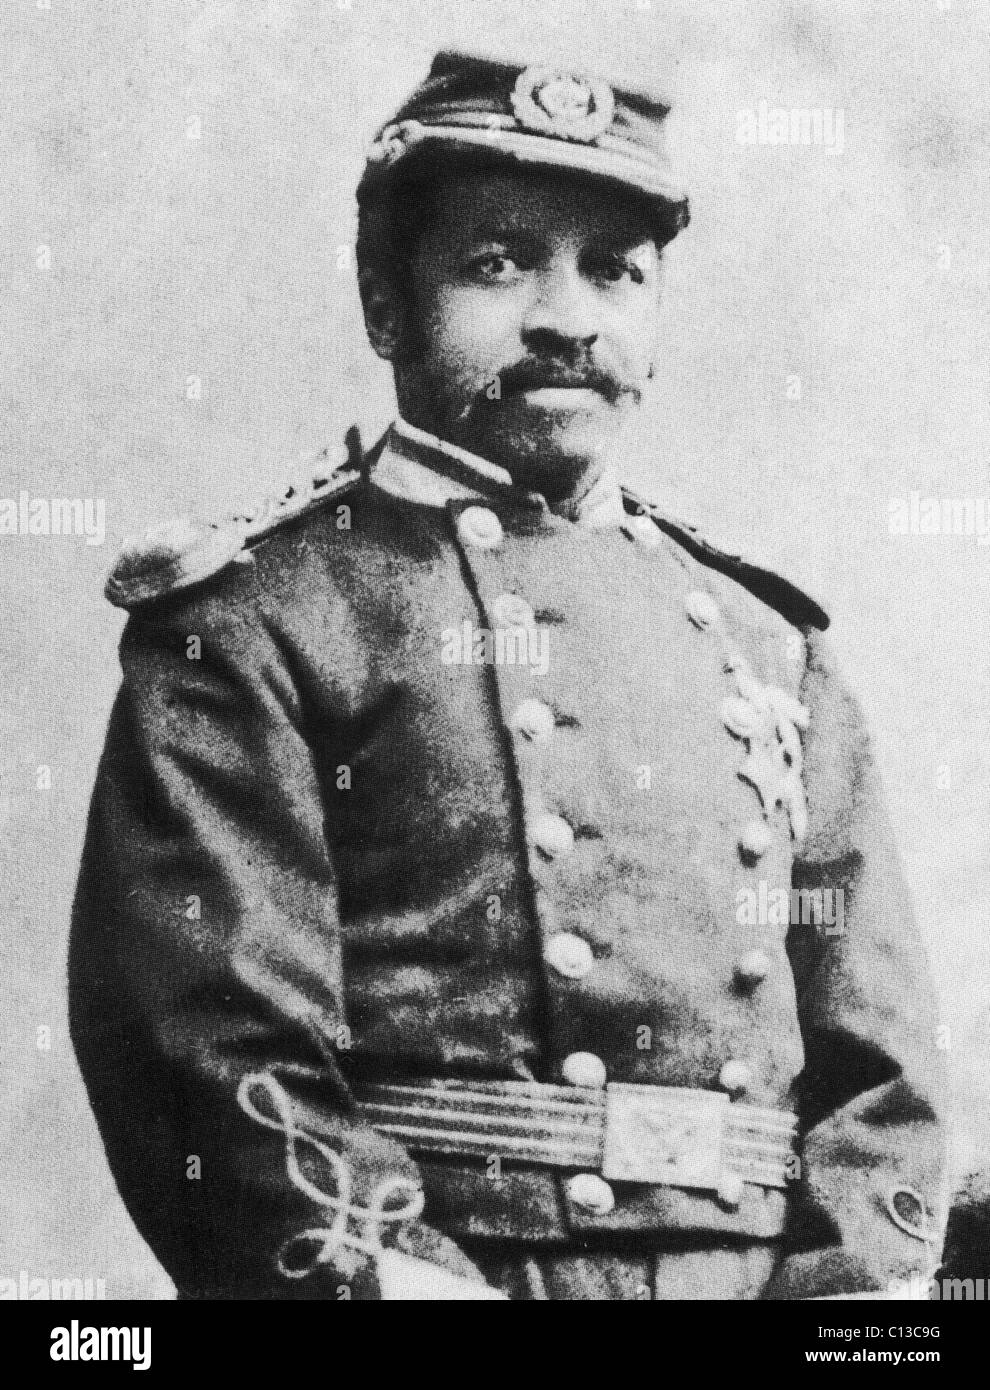 CHRISTIAN ABRAHAM FLEETWOOD  (1840-1914) Sergeant major in the 4th US Colored Infantry during the Civil War who - Stock Image